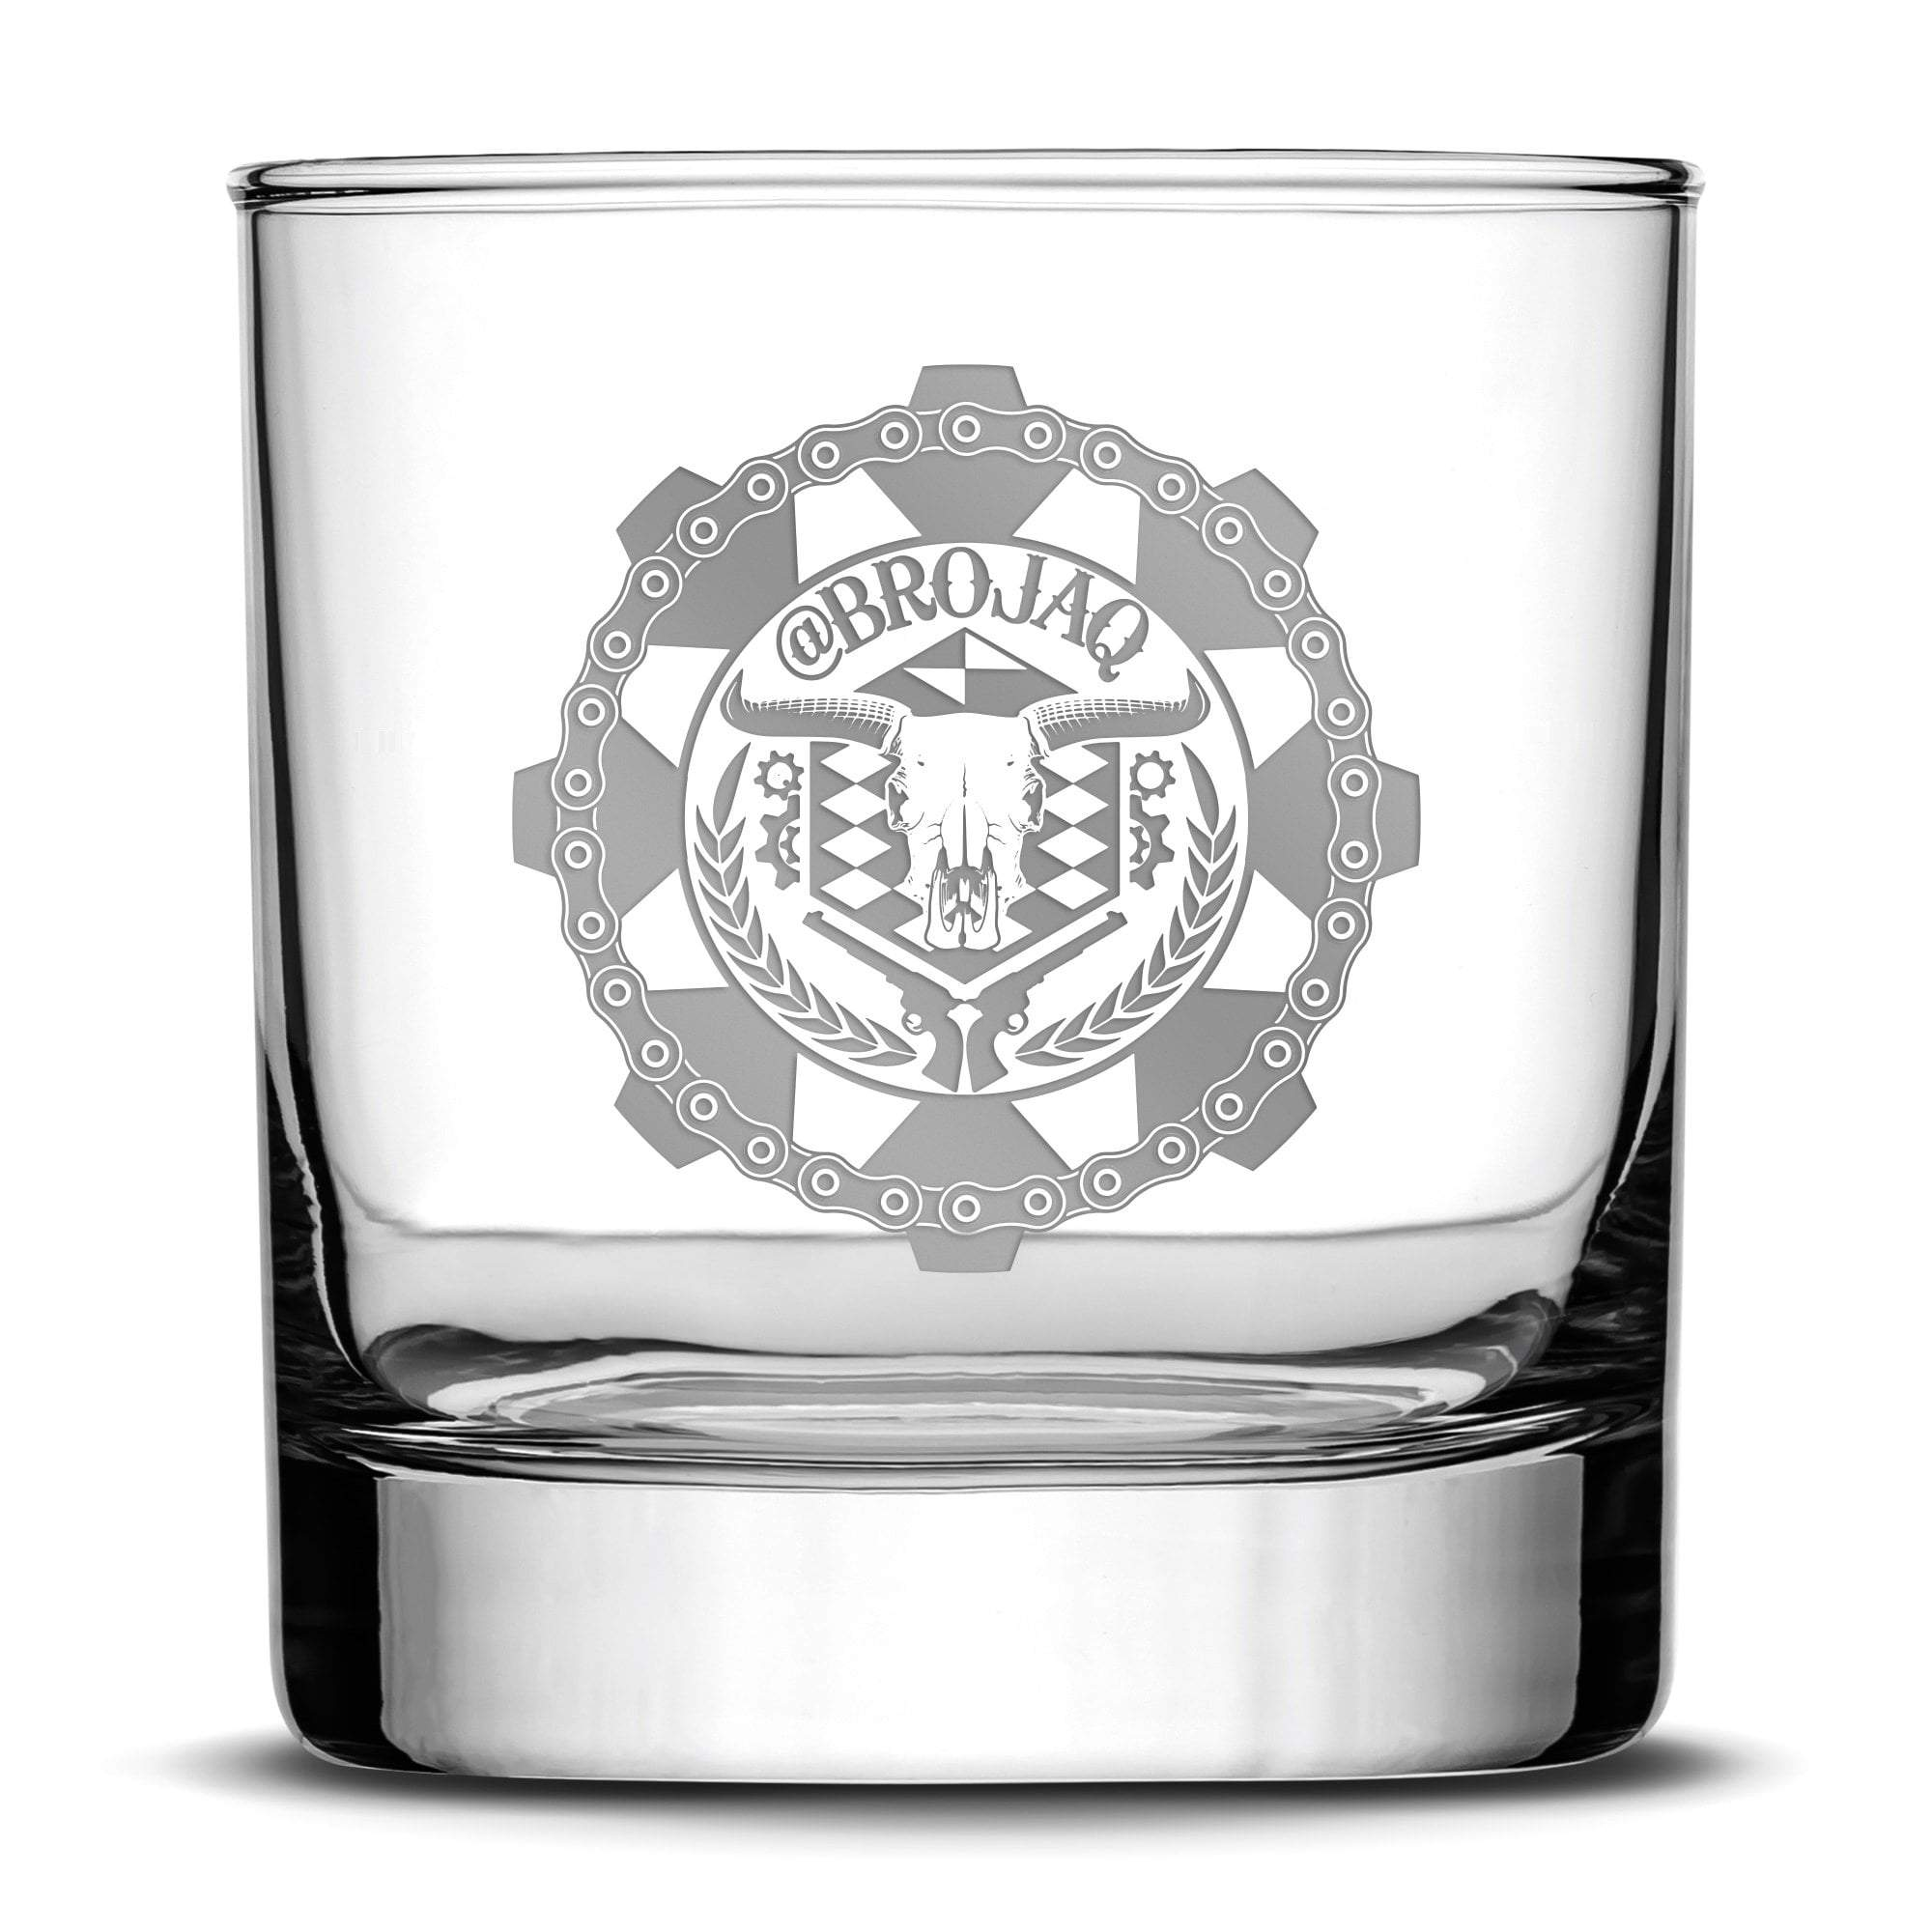 Silver Etch Premium Whiskey Glass, Hand-Etched Liquor and Rocks Tumbler, Old Fashioned Brojaq Sprocket, Made in USA, 11oz Integrity Bottles